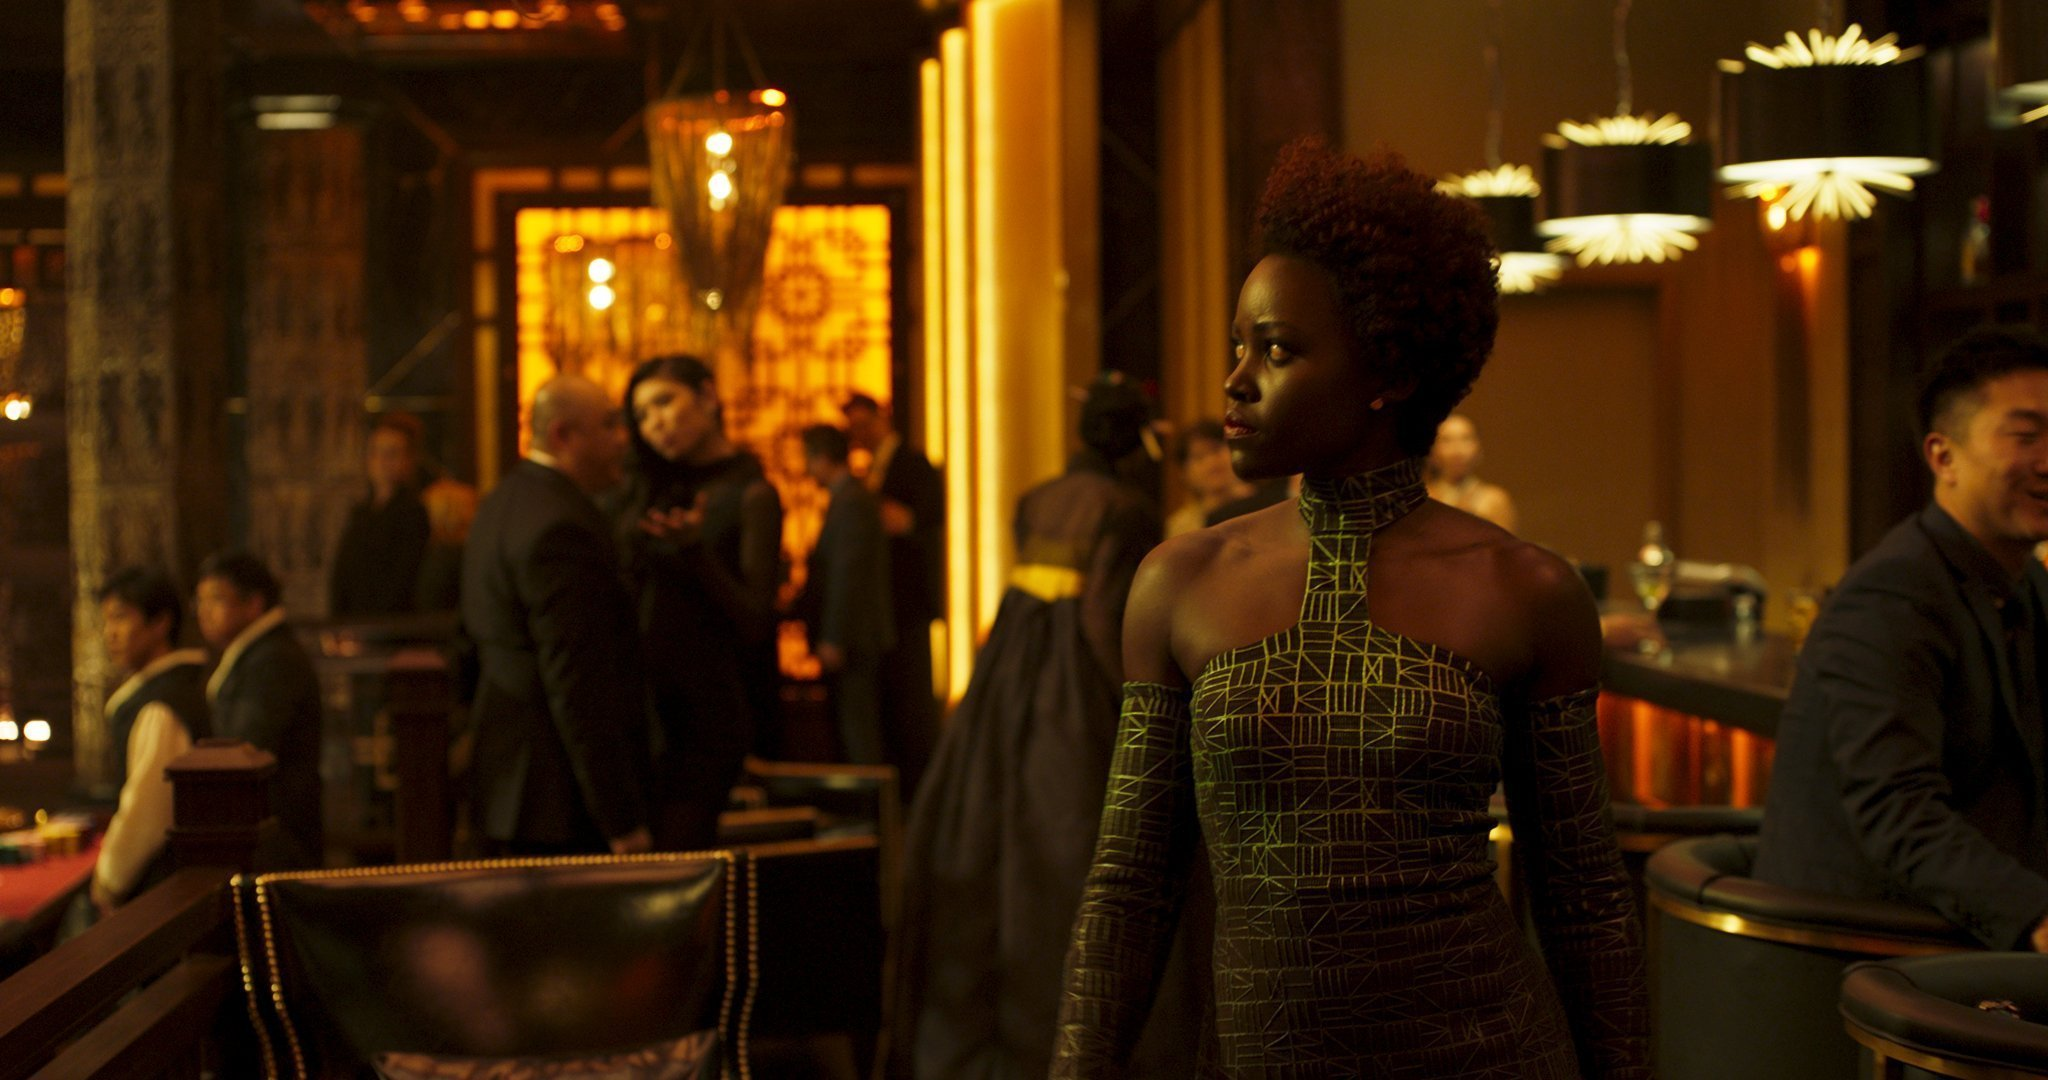 Photo du film Black Panther réalisé par Ryan Coogler avec Lupita Nyong'o